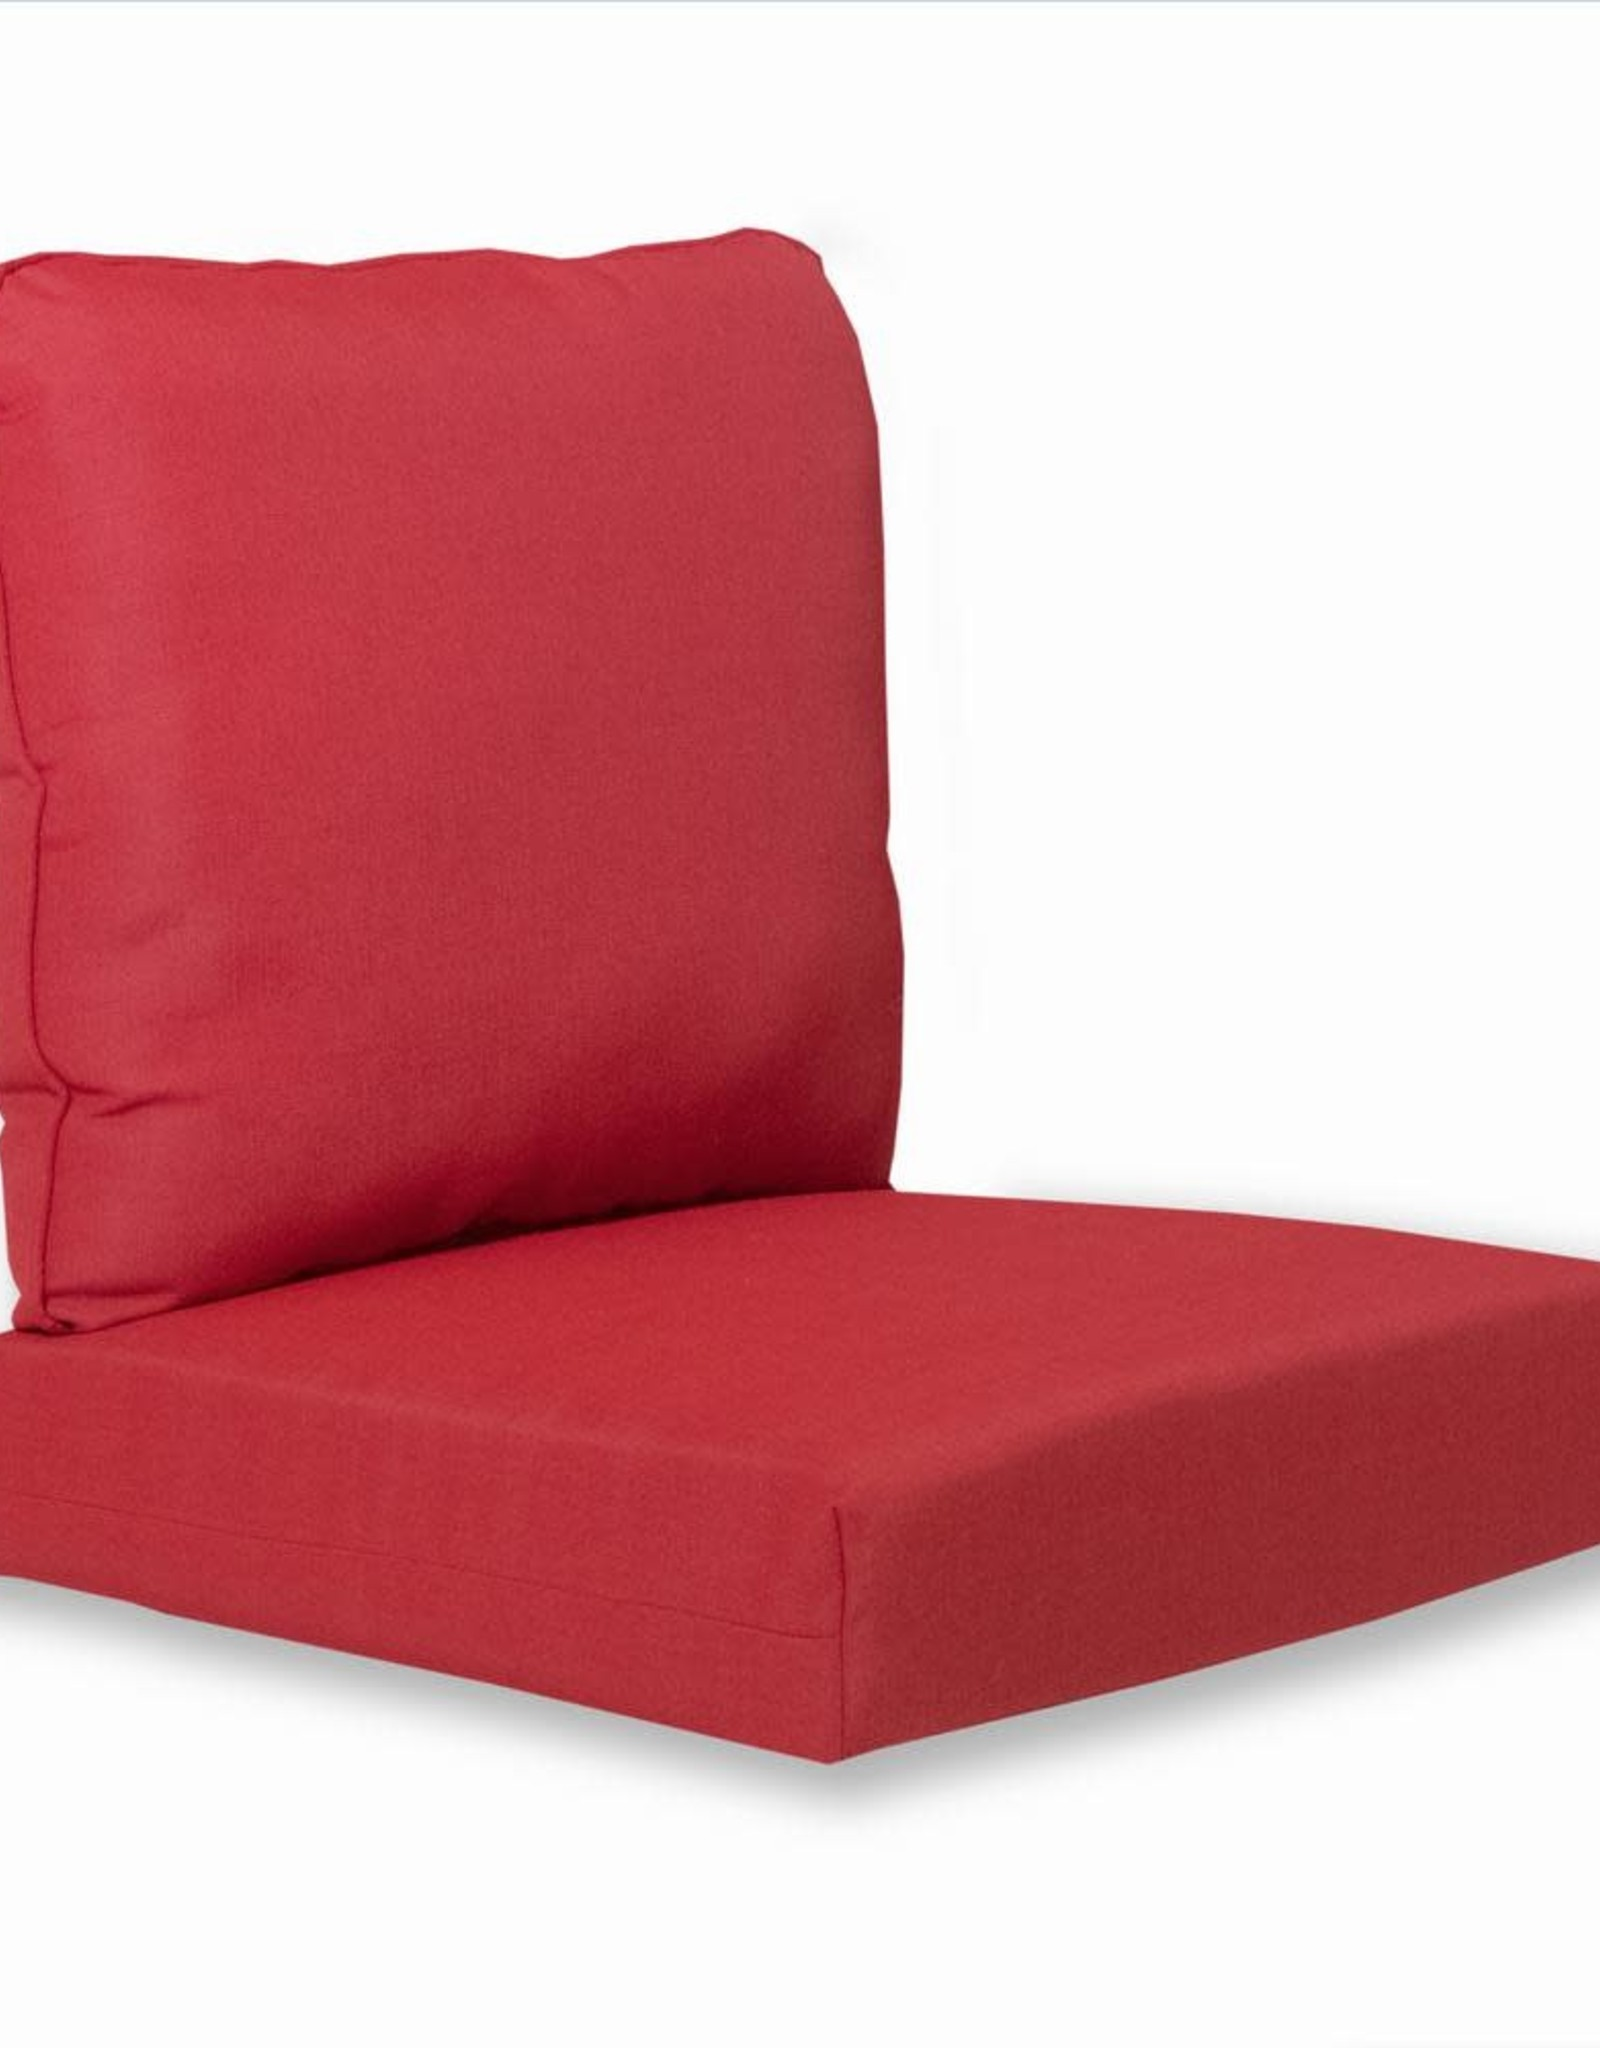 Hampton Bay Deep Seating Outdoor Patio Cushion in Chili